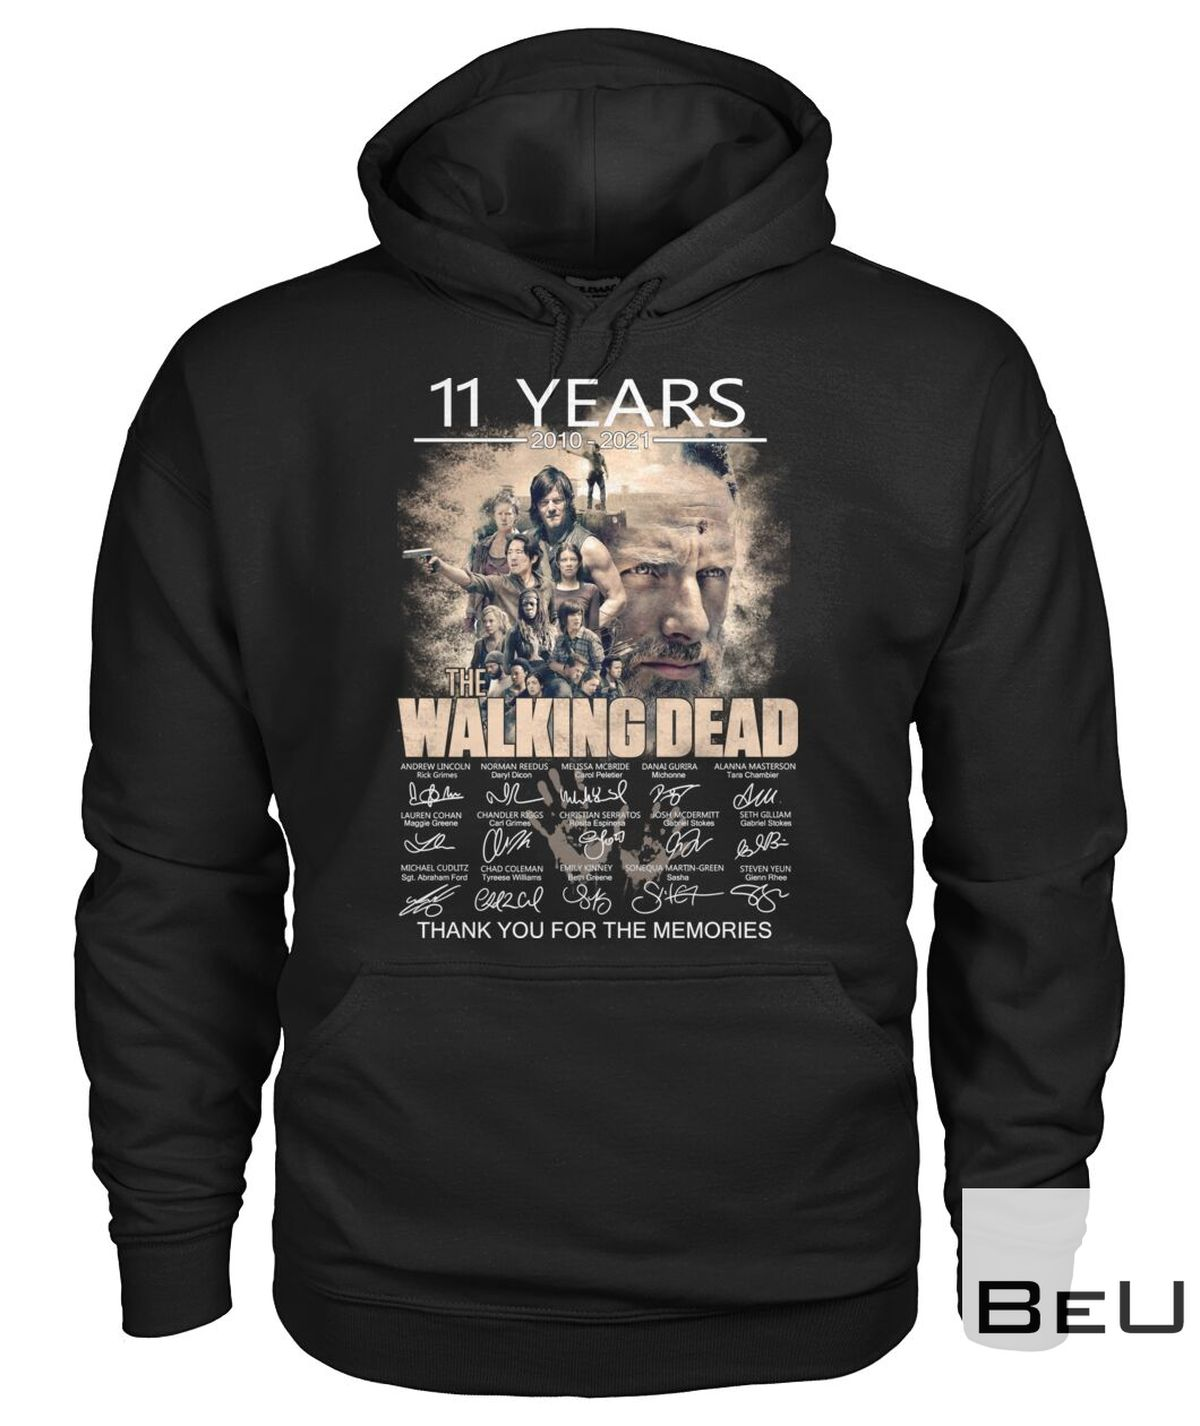 11 Years 2010 2021 The Walking Dead Thank You For The Memories Shirt z